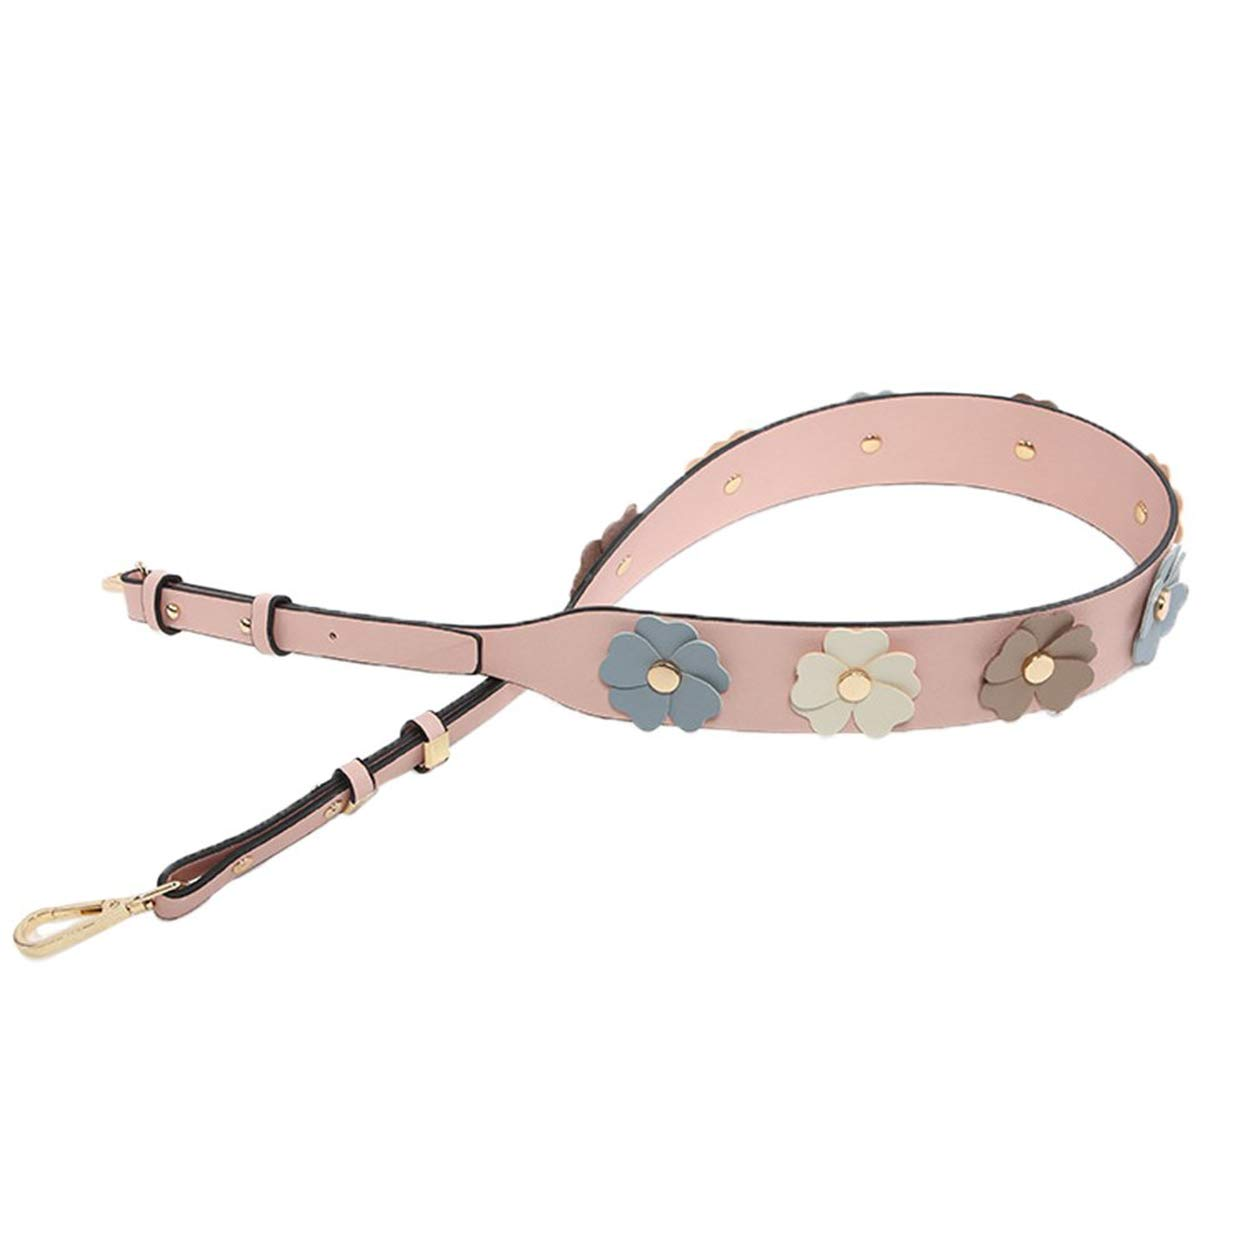 Replacement Shoulder Strap Adjustable Leather for Crossbody Bag Messenger Bag (Flower Pink) by ba knife